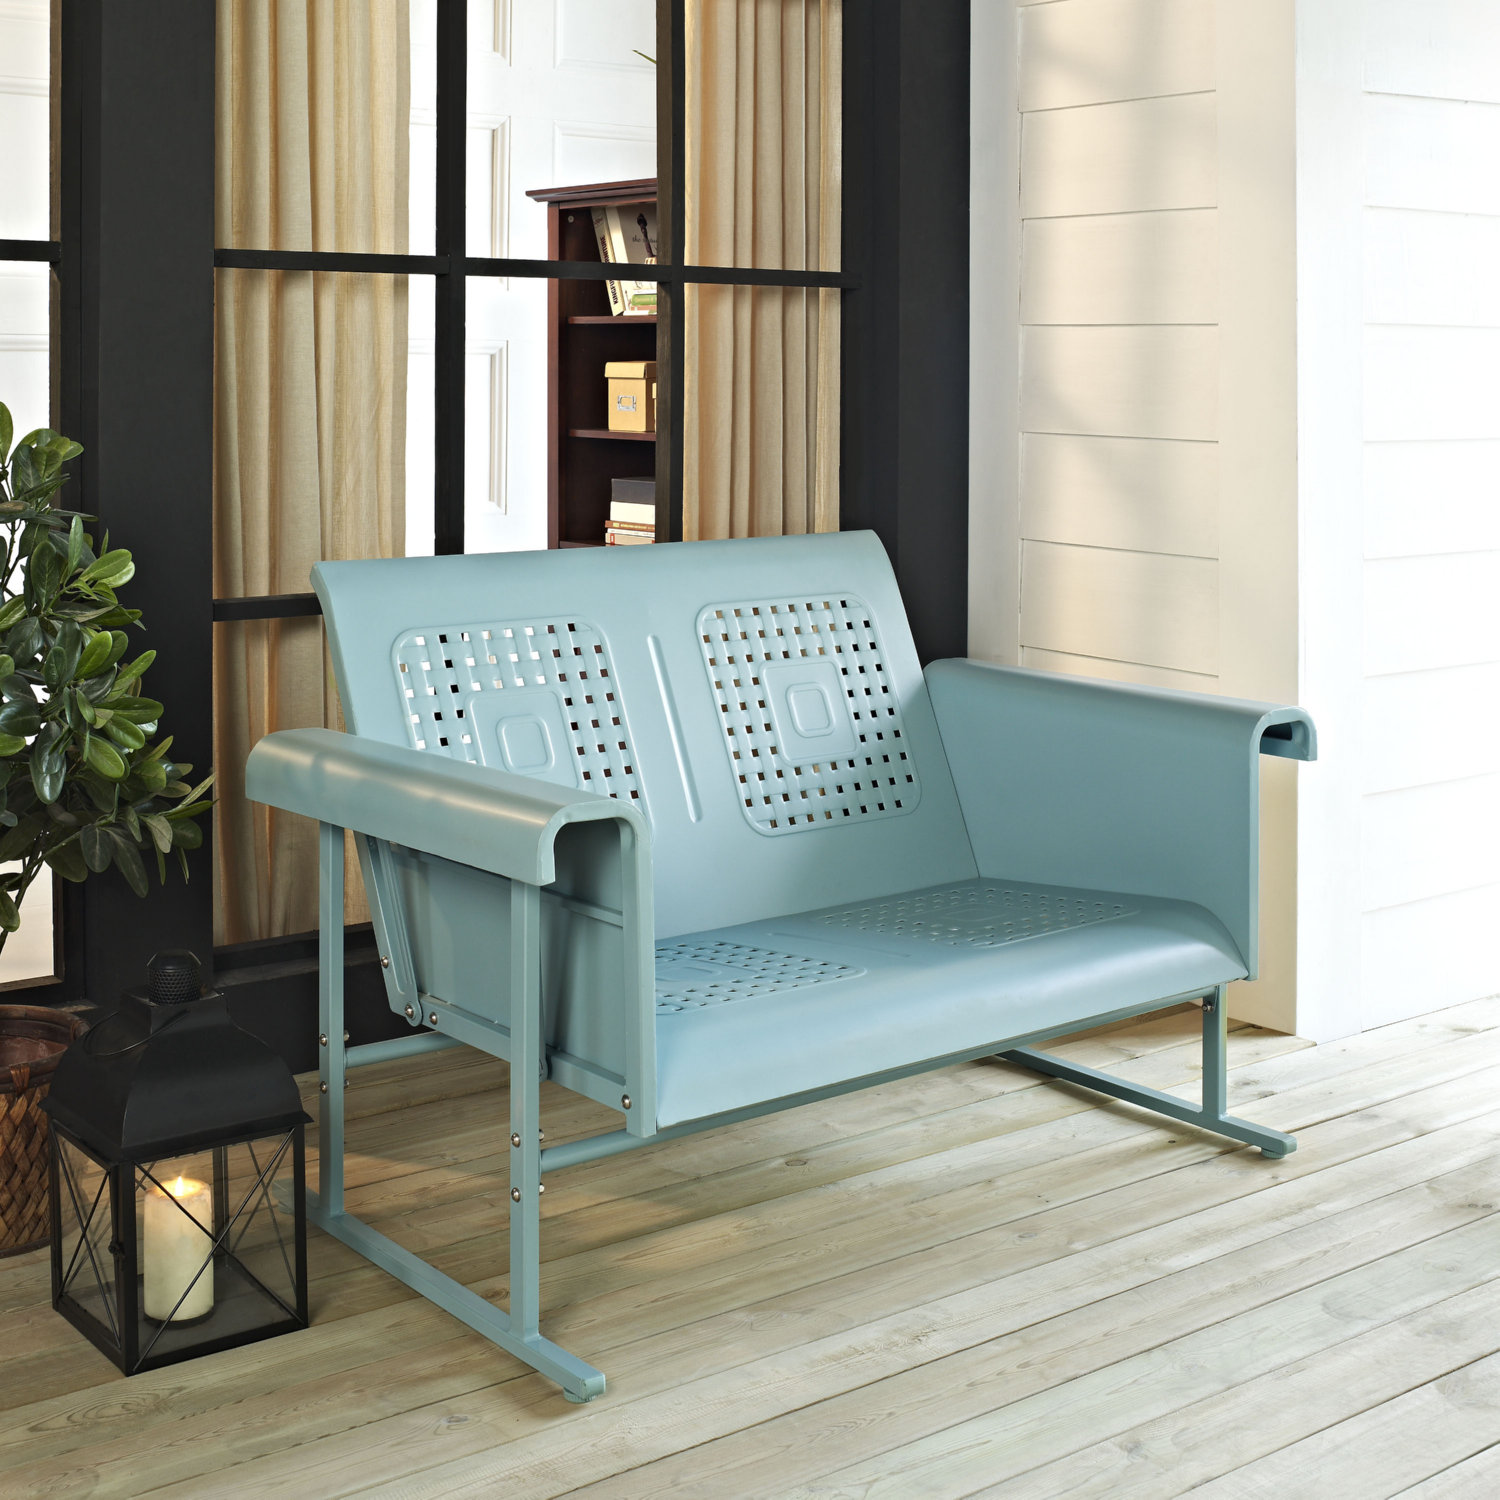 Incredible Veranda Outdoor Loveseat Glider In Caribbean Blue Steel By Crosley Onthecornerstone Fun Painted Chair Ideas Images Onthecornerstoneorg